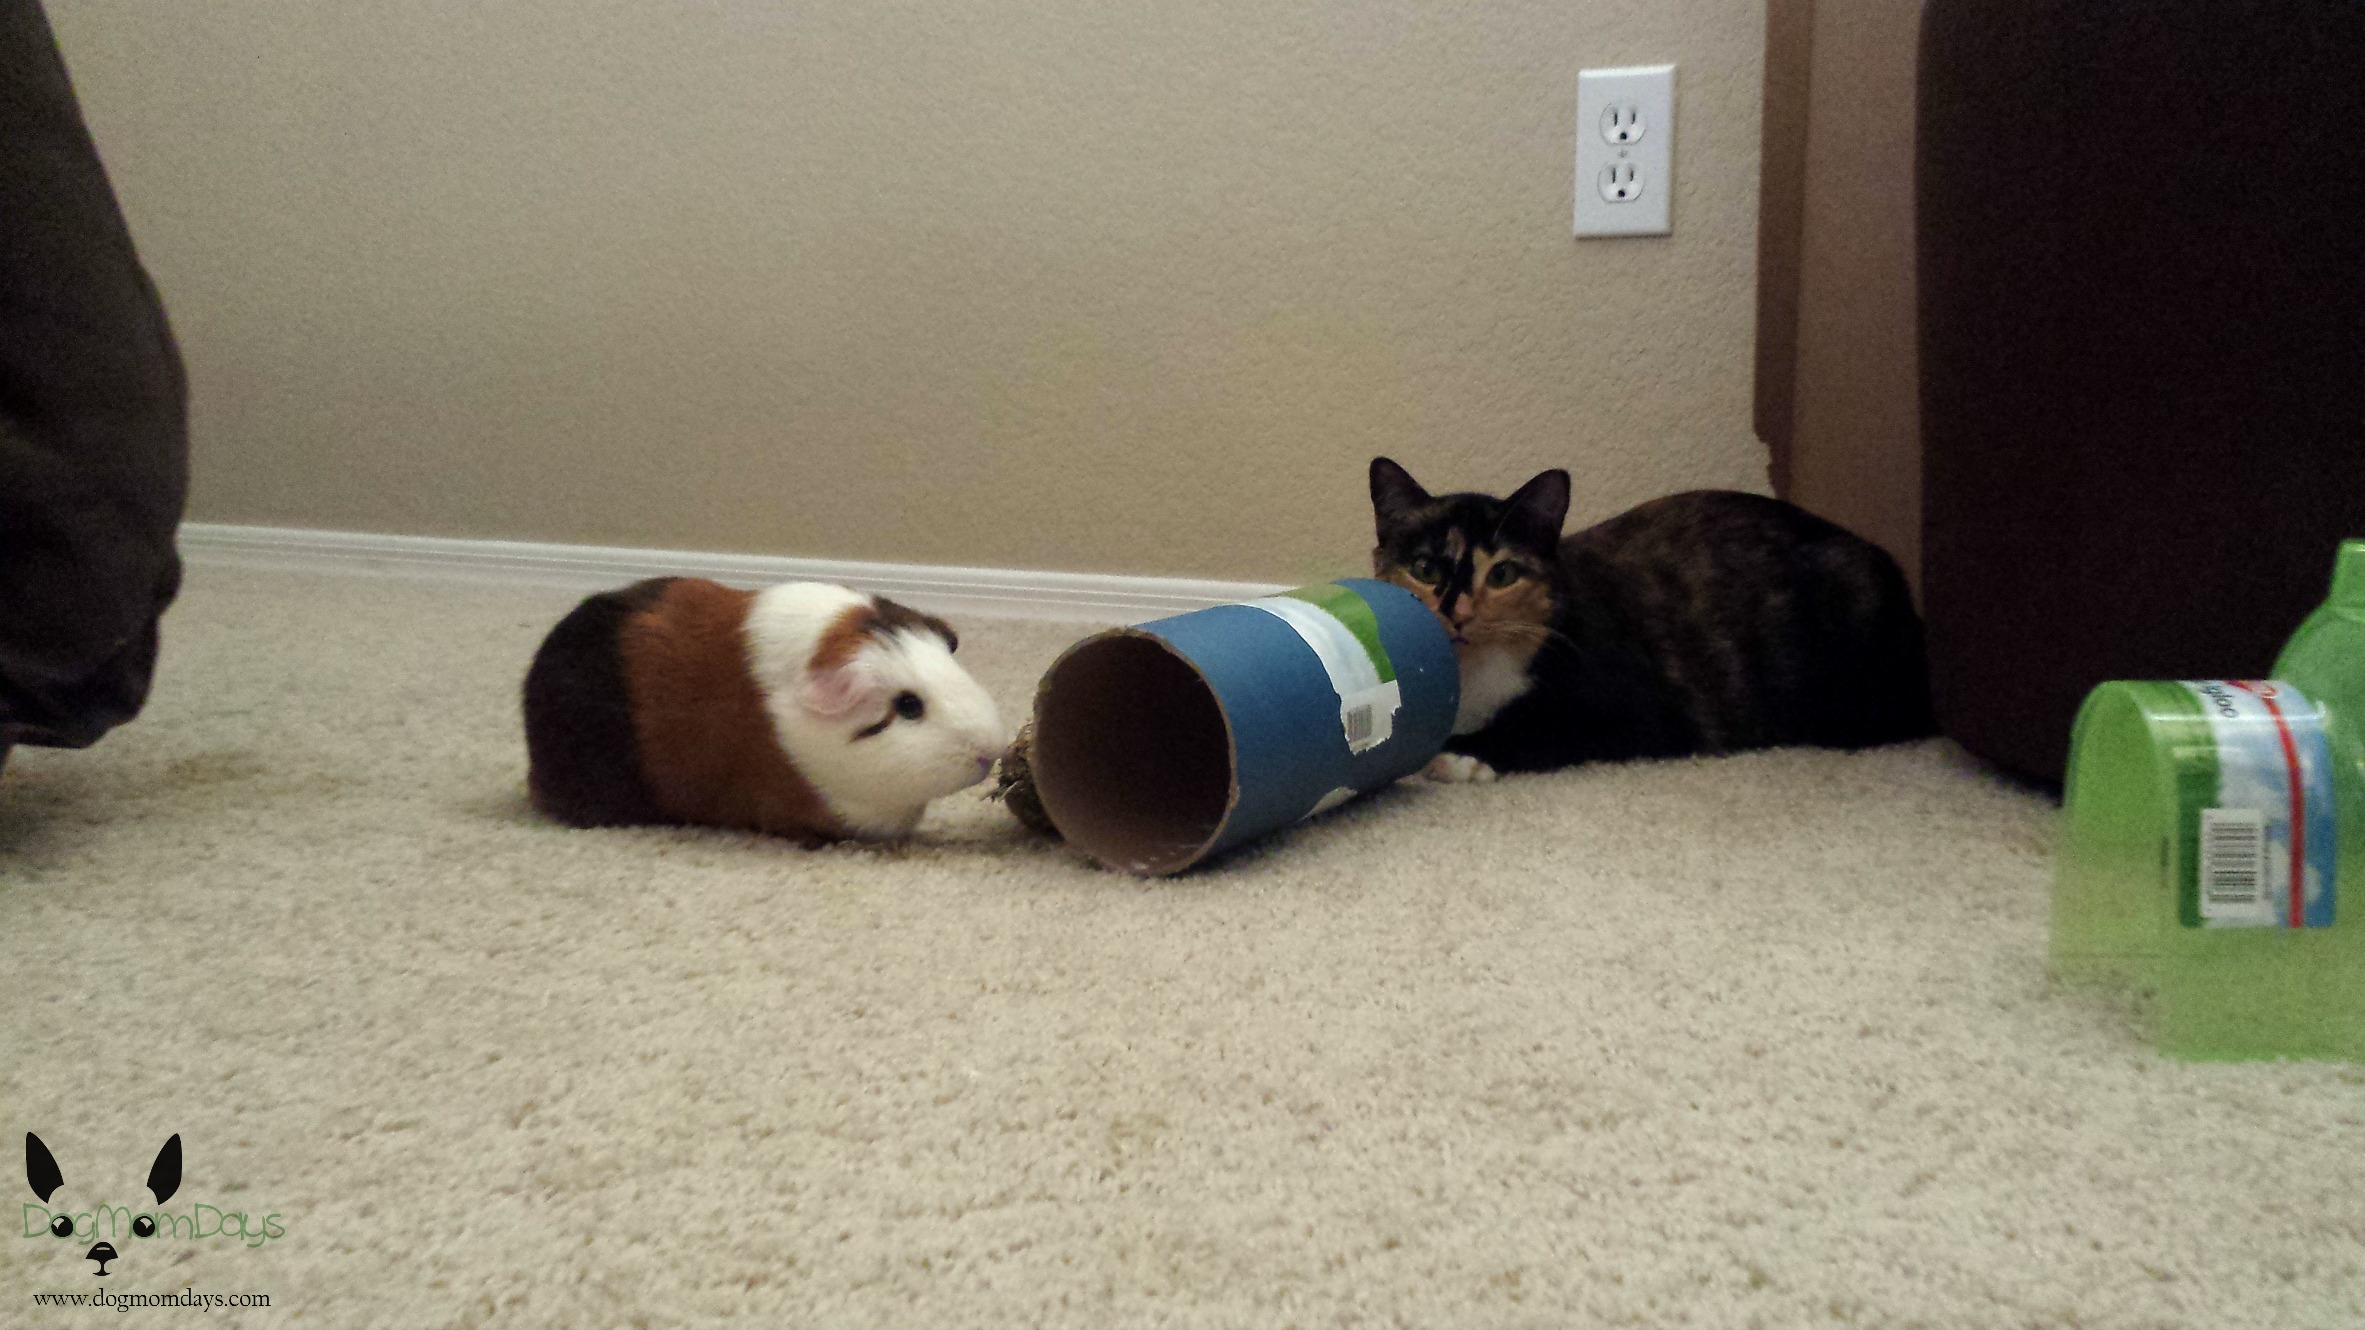 Guinea pig and cat